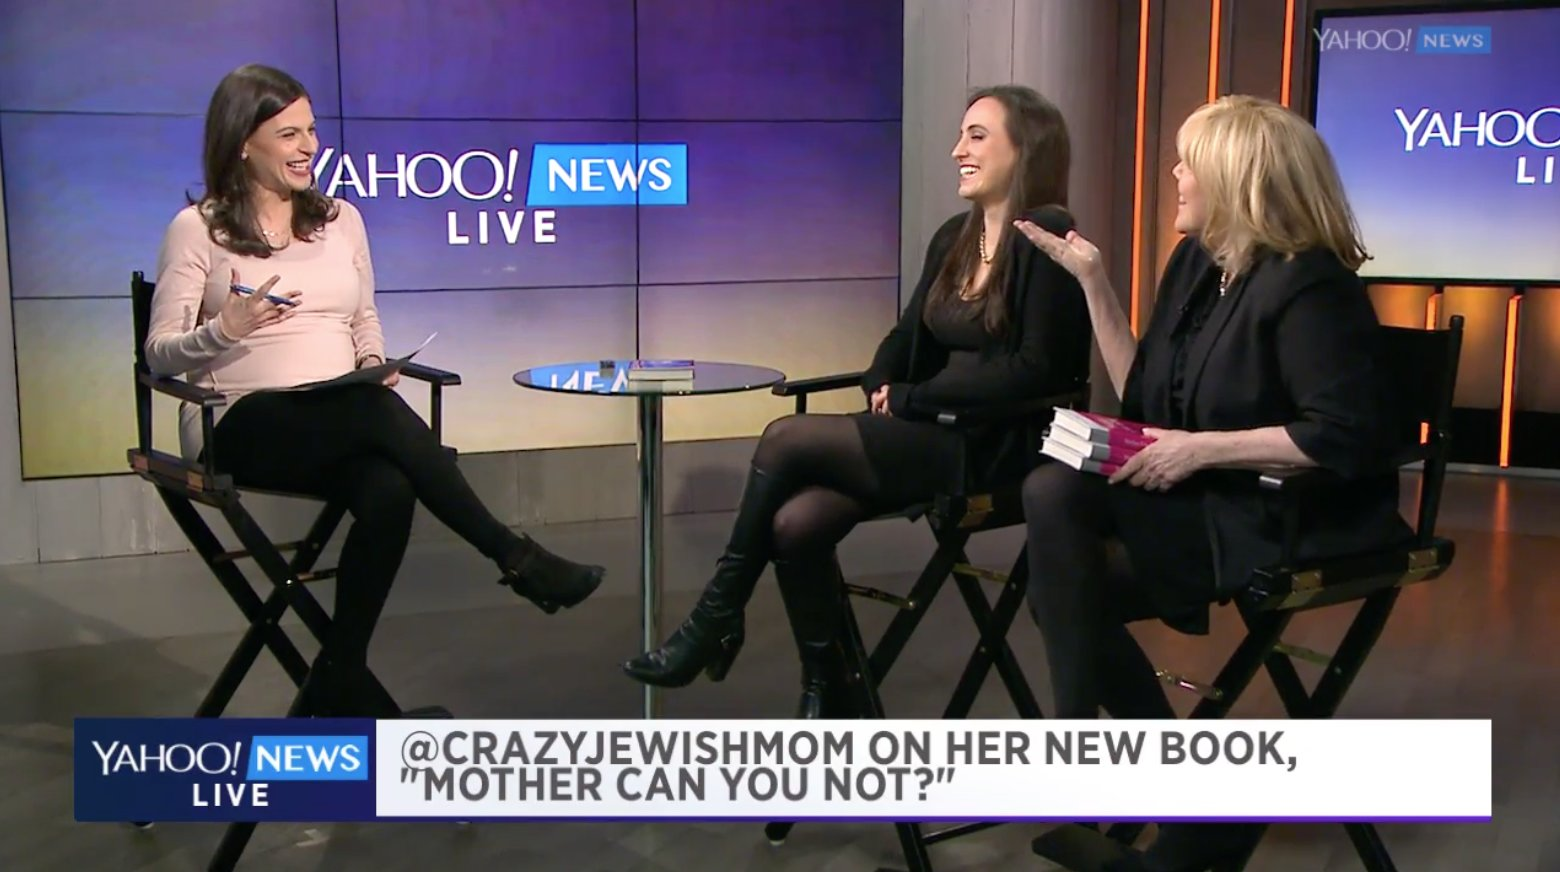 Yahoo news - Mother And Daughter Behind Viral Instagram Crazy Jewish Mom Talk Love Sex And Politics